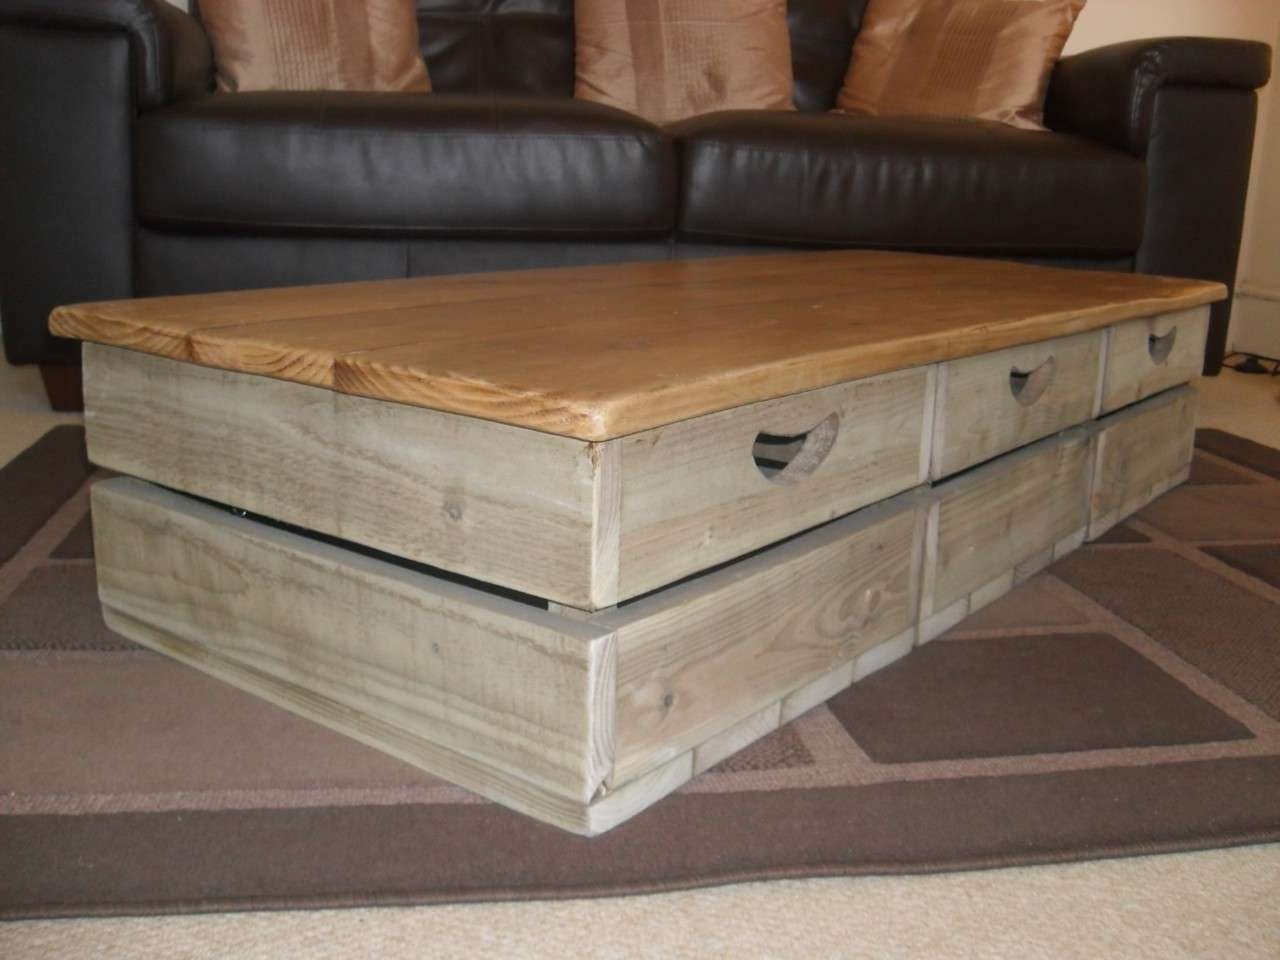 Most Recently Released Rustic Square Coffee Table With Storage Throughout Rustic Coffee Table Sets – Matt And Jentry Home Design (View 12 of 20)